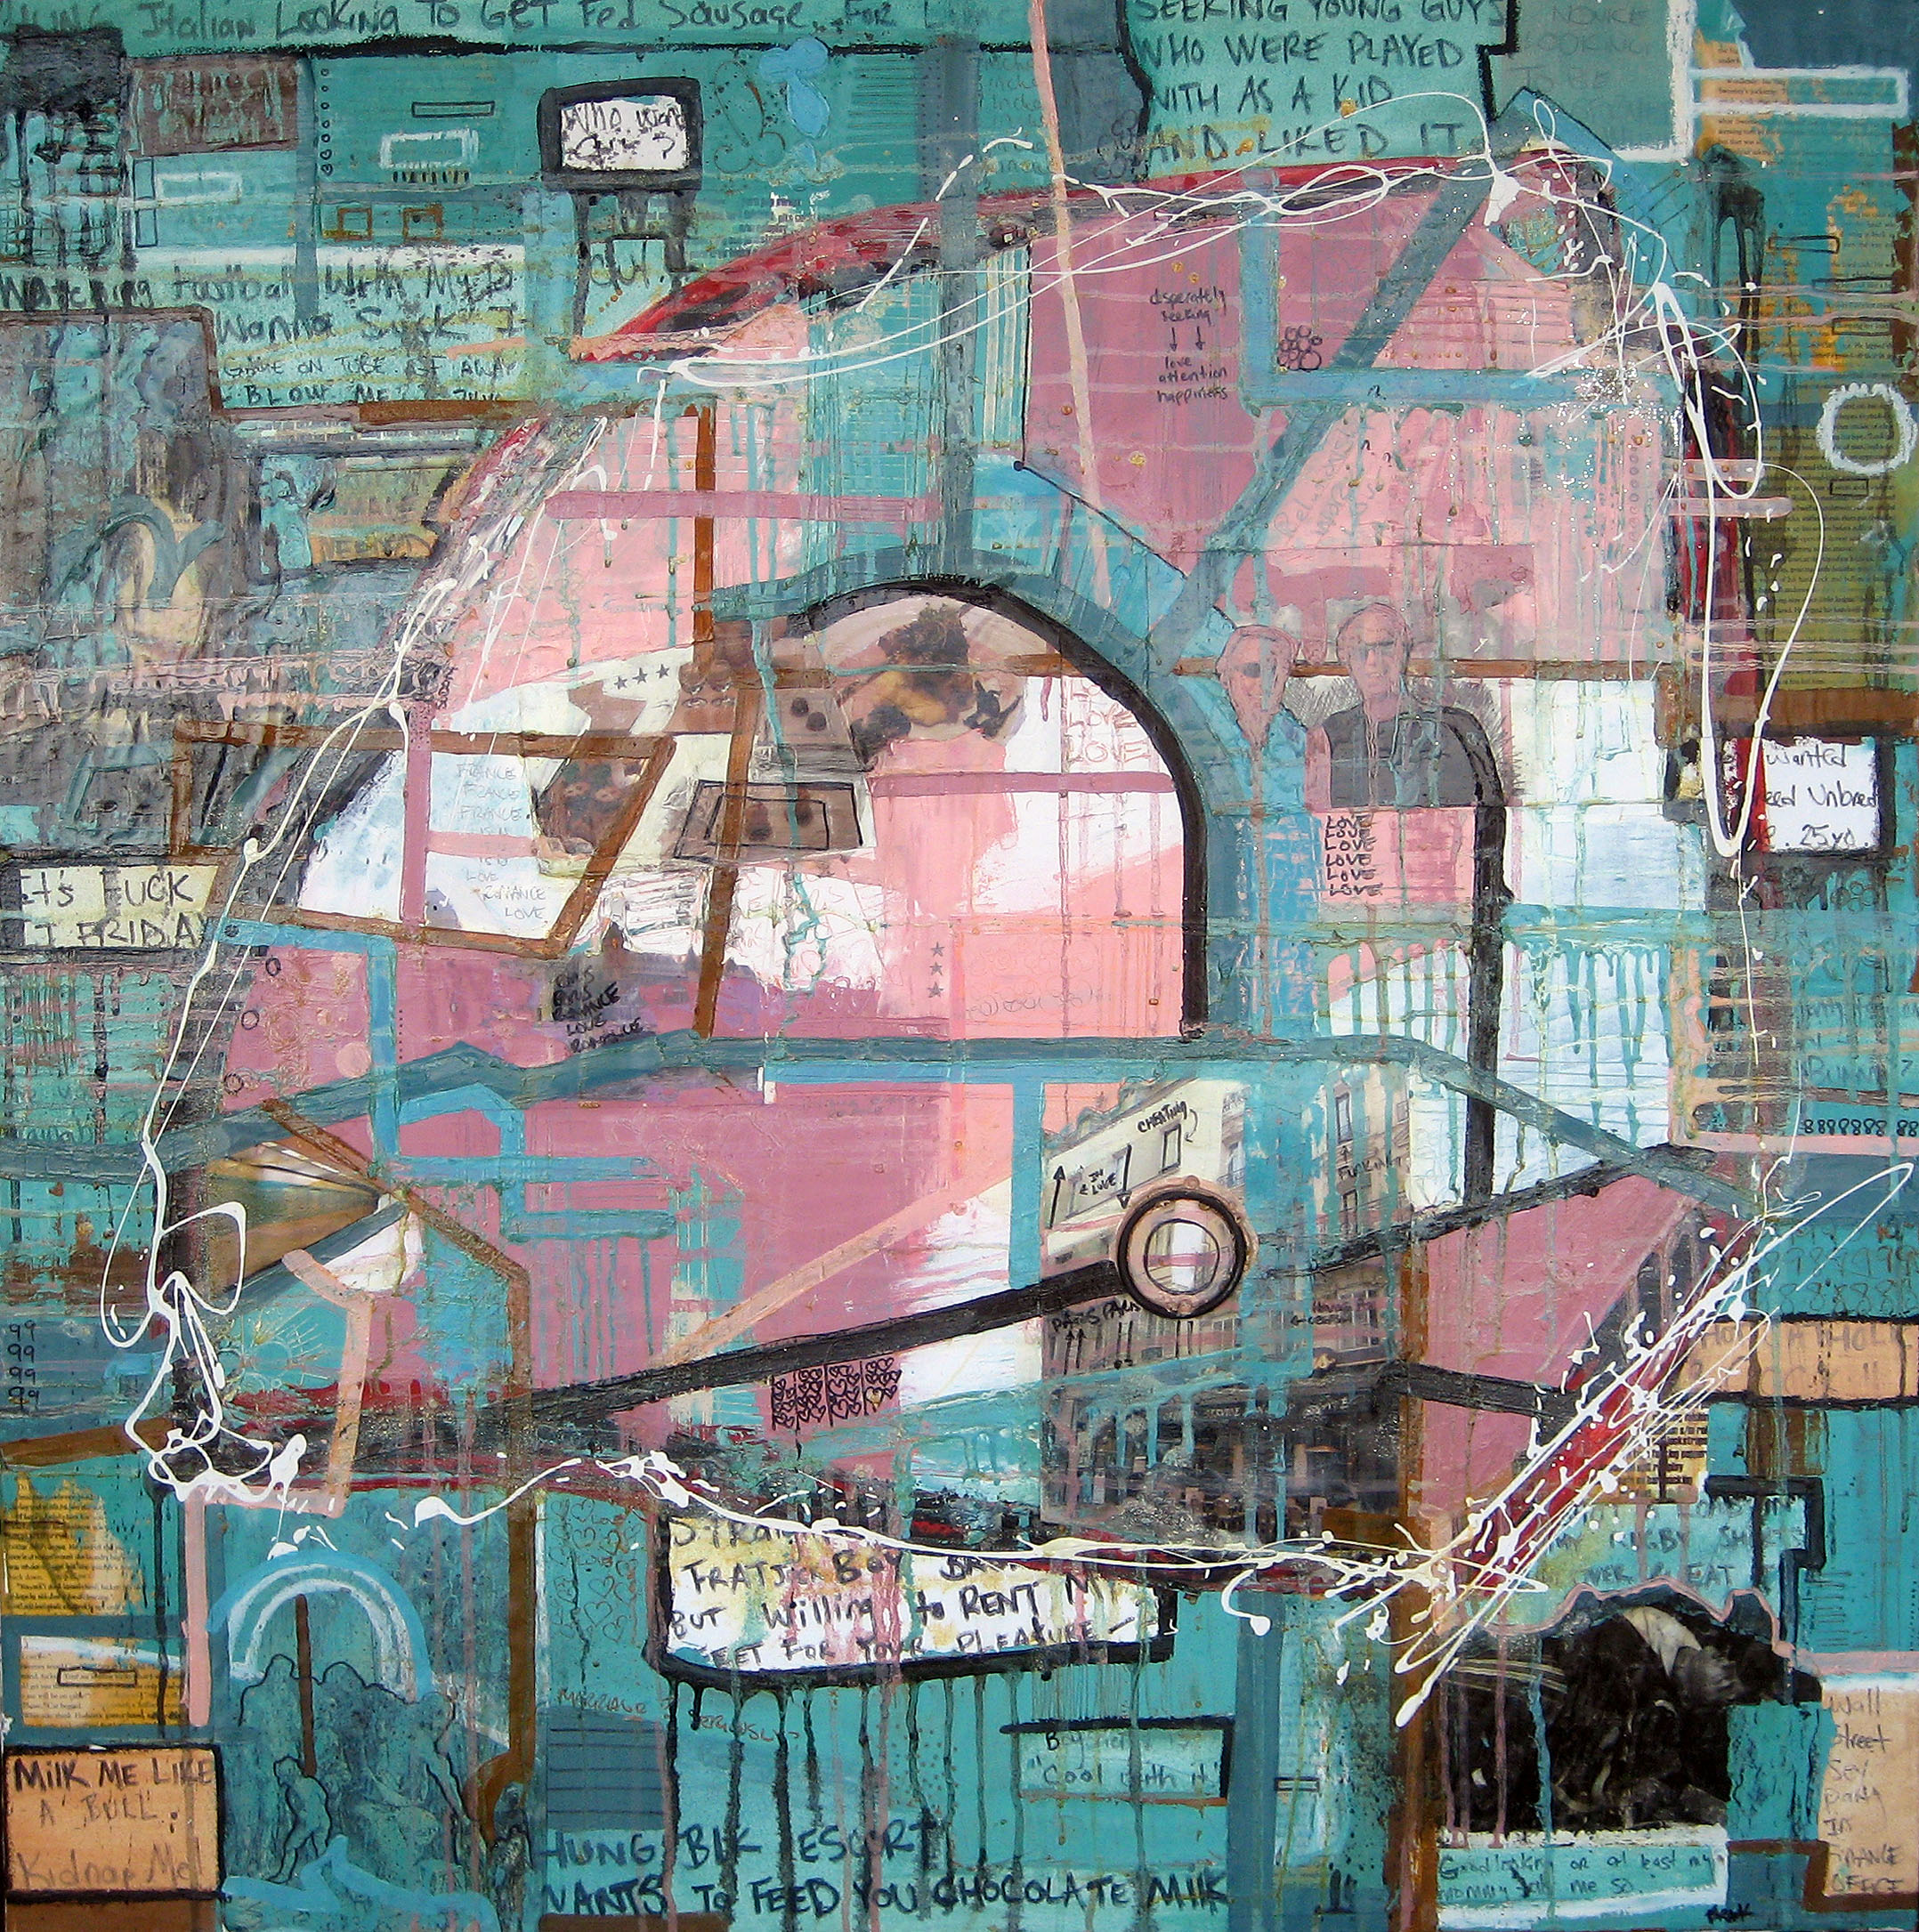 Enchanting Excess, 2006, Oil and Mixed Media on canvas, 45 x 45 inches